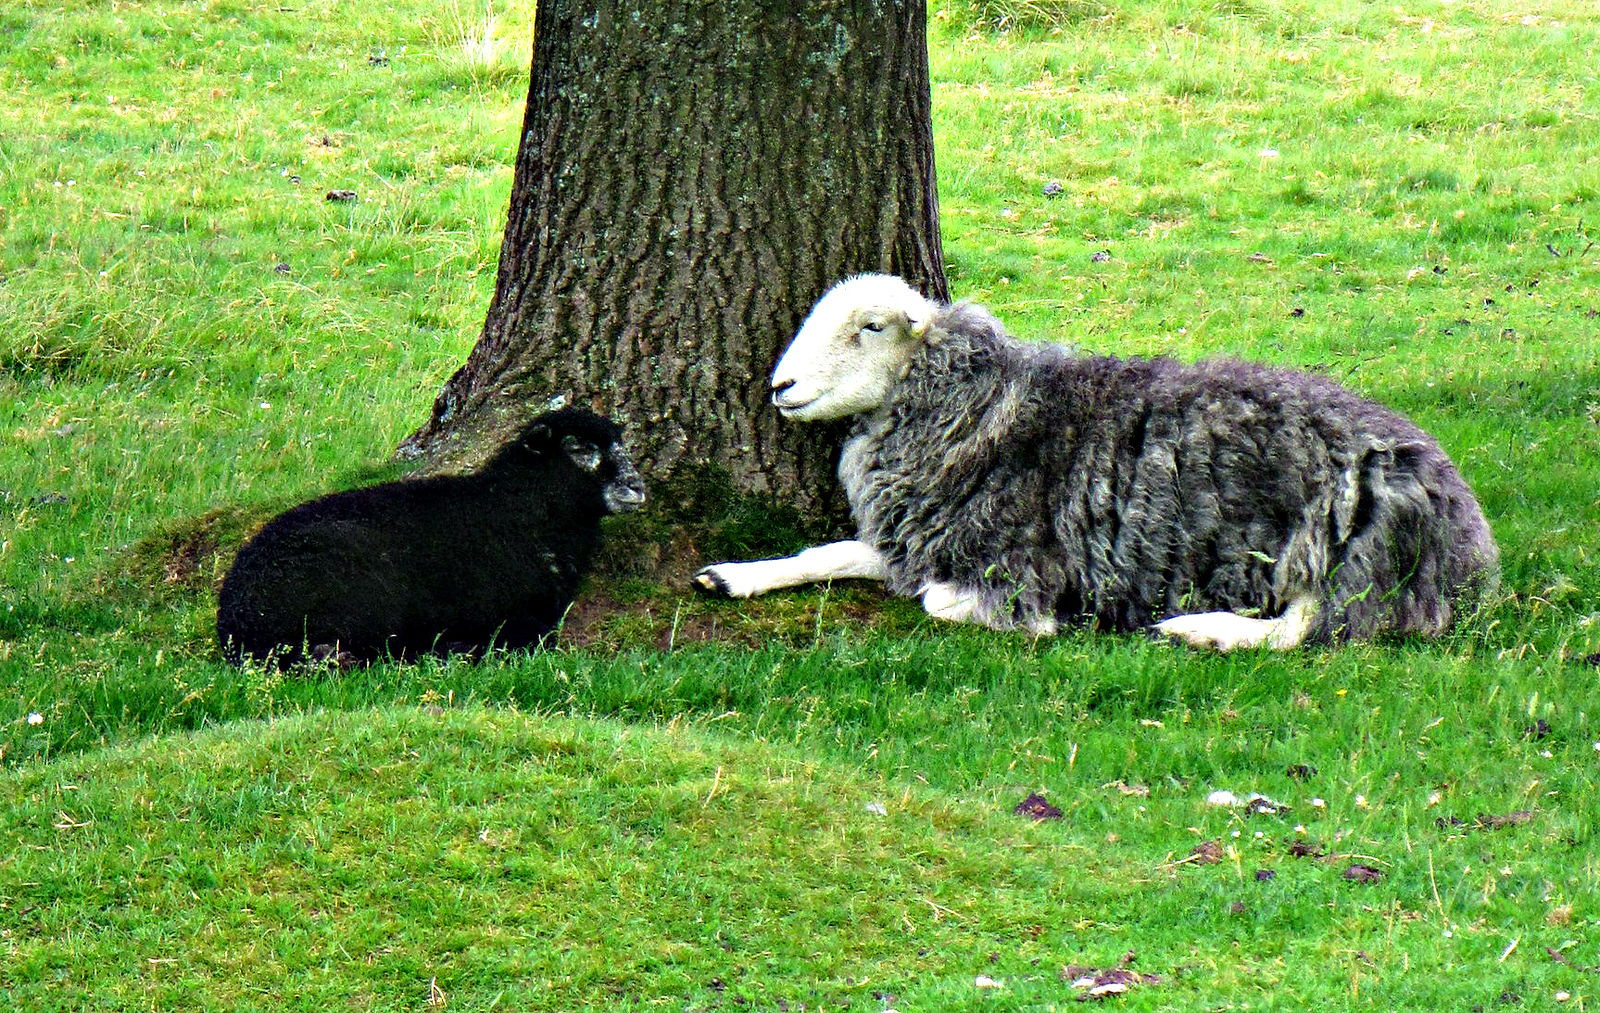 Sheep at rest.